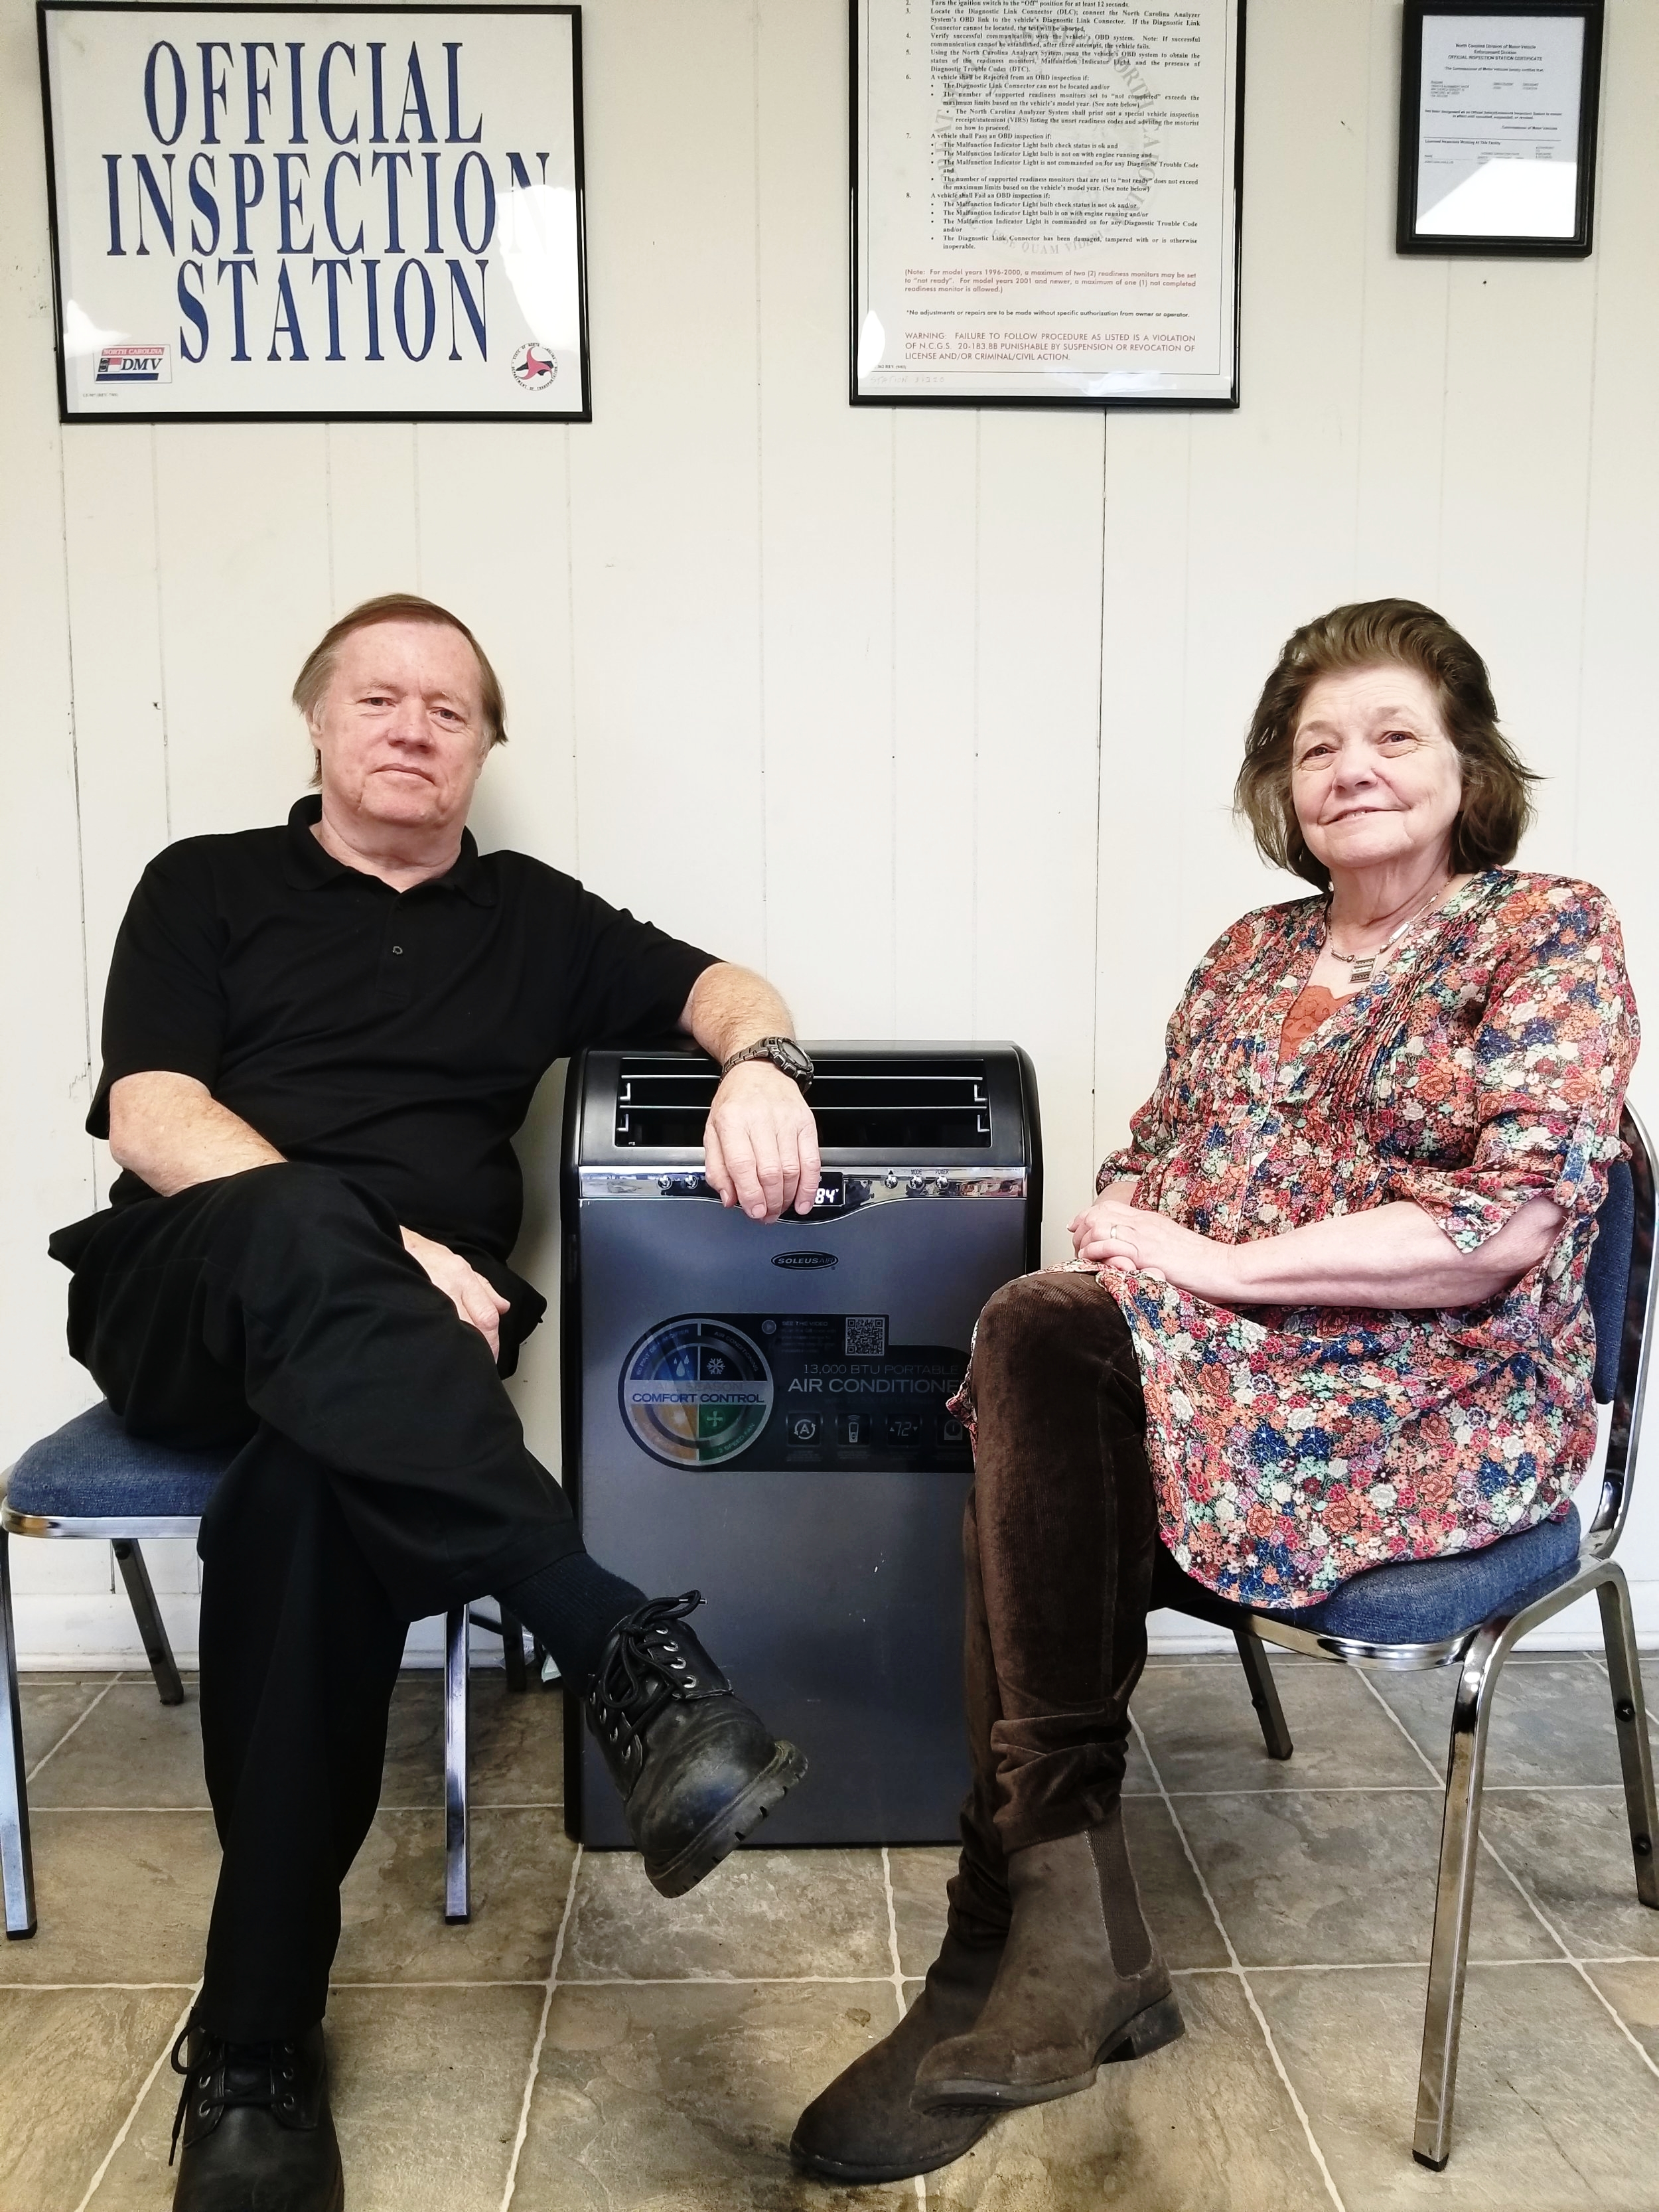 Terry & Vicki Maners - Founder of Terry's Alignment ShopOn a brisk evening dating back to October 1st 1996, Terry and his wife, Vickey, began on a jounrey to create the legacy that is, Terry's Alignment Shop.